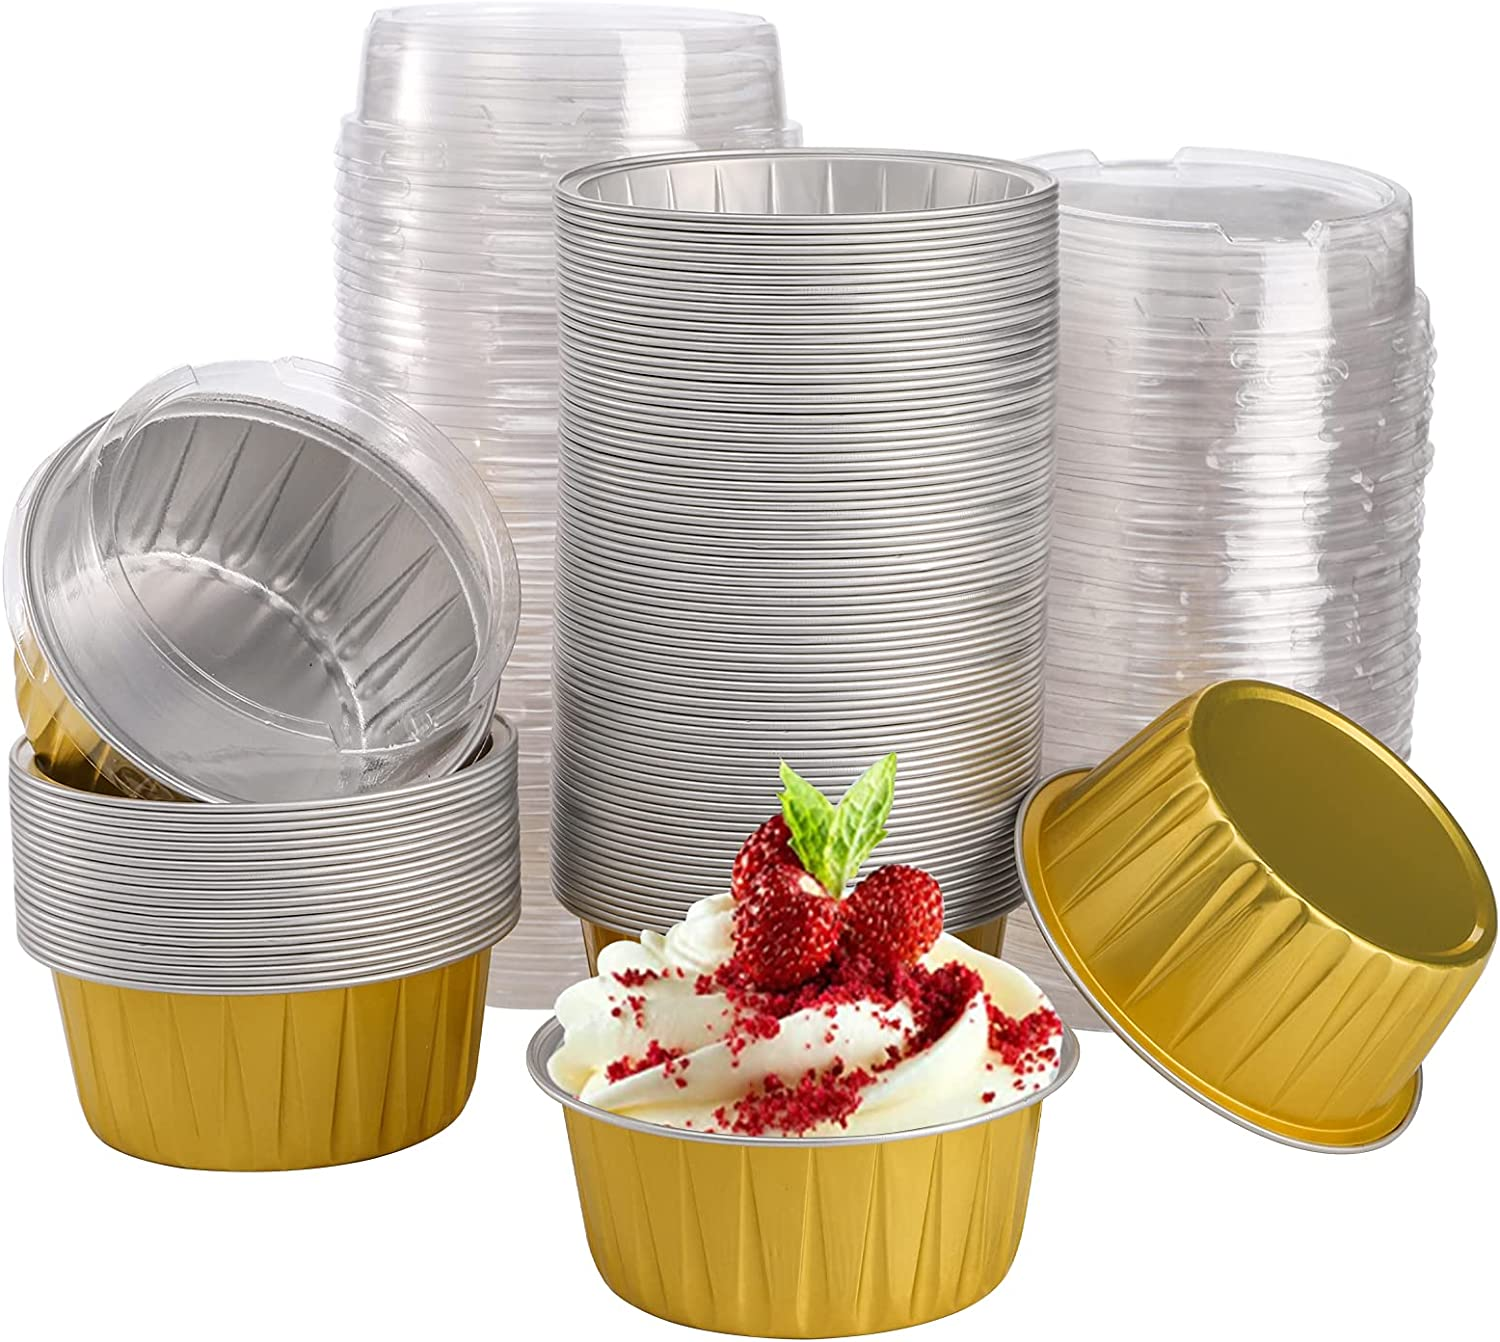 DEAYOU 100 Pieces Aluminum Foil Muffin Cupcake Ramekins, 5oz Cupcake Liners with Lids, 3 Inch Mini Tart Tins Pans Baking Cups Holder for Souffle, Pudding, Parties, Wedding, Gold